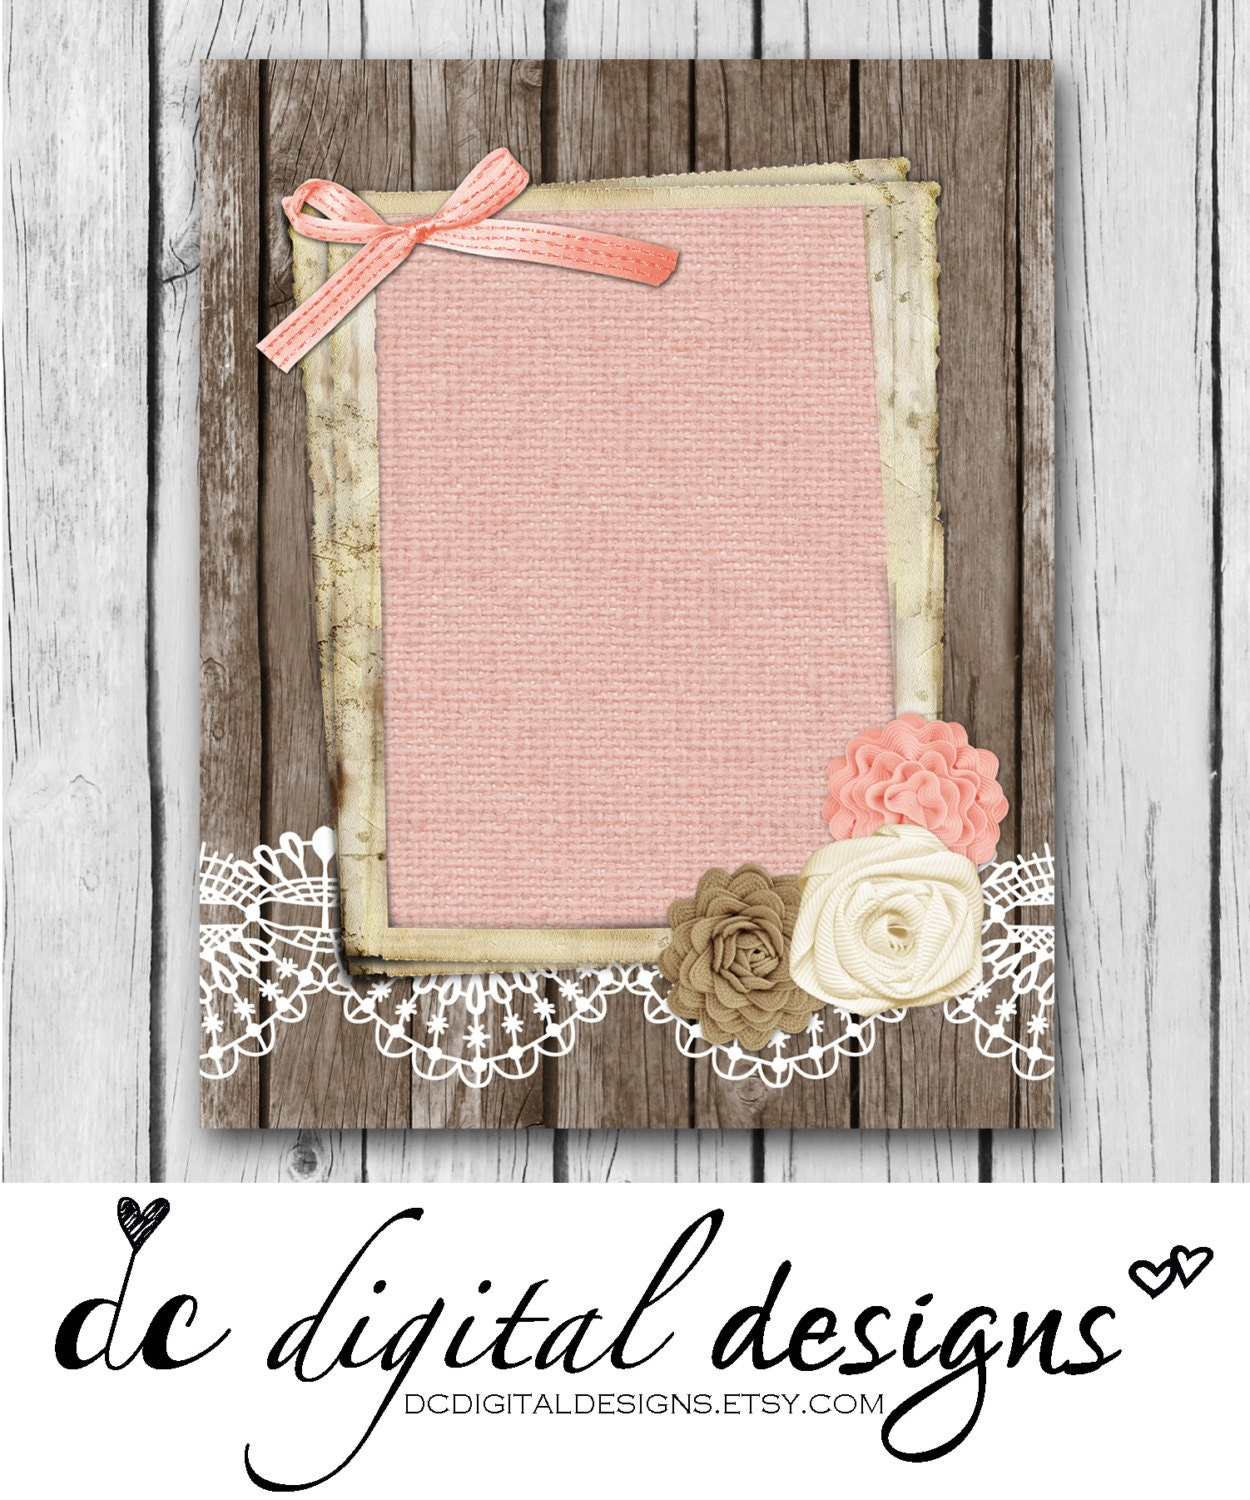 Girly Rustic Chic Bedroom: 8x10 Blank Rustic Girly Flowers Wood Shabby Chic Pink